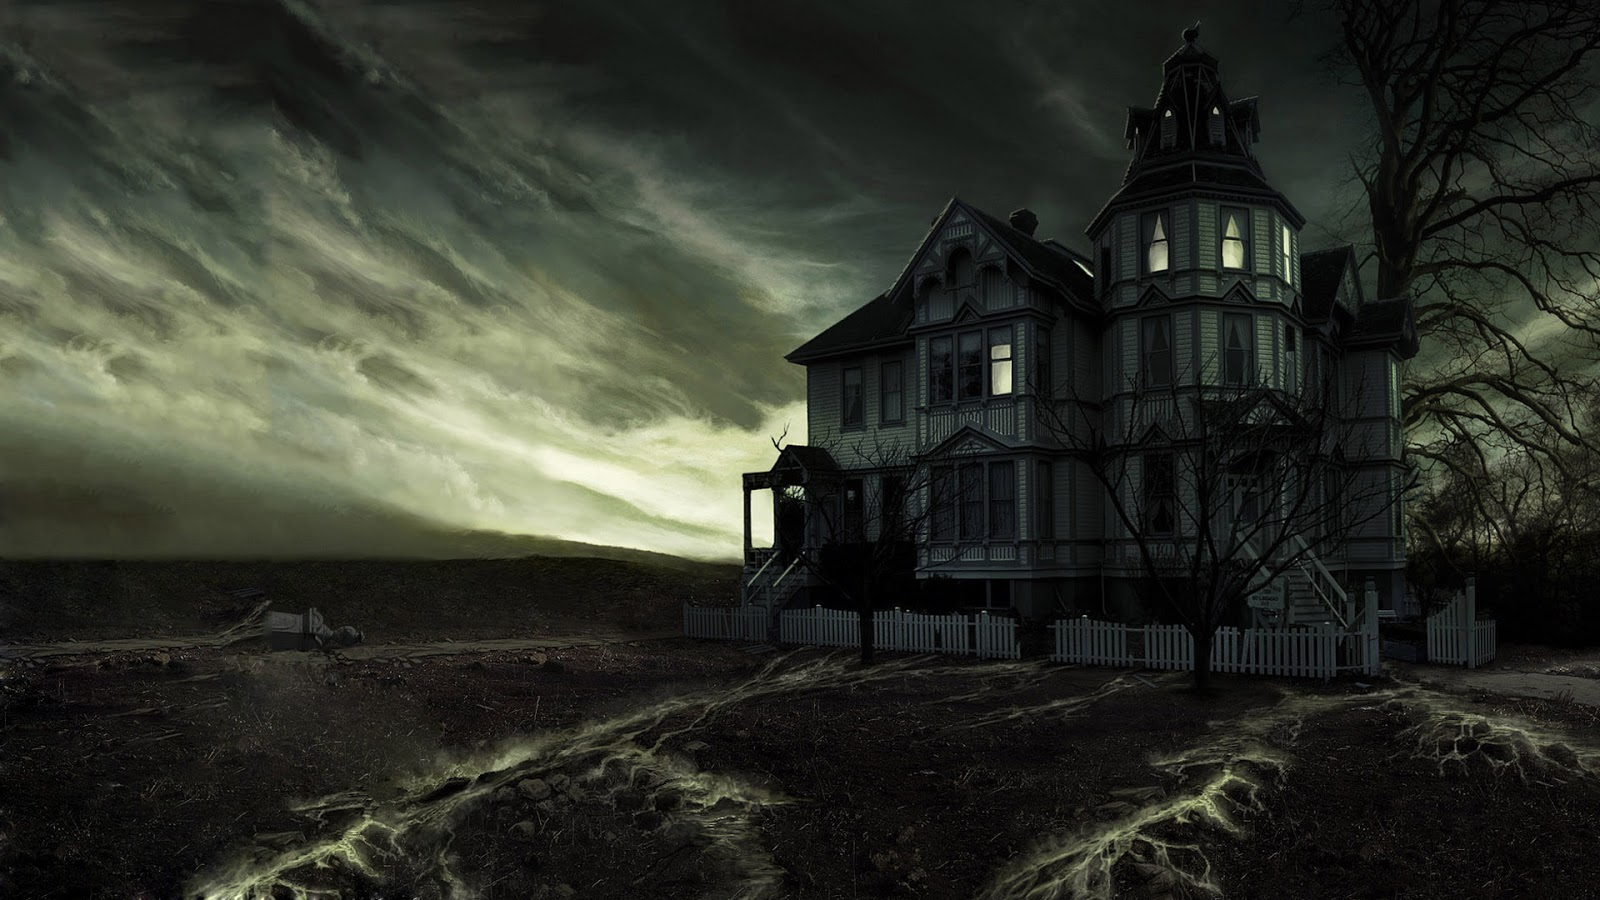 Creepy Hd Wallpaper: Top Scary HD Wallpapers Of Halloween 2012 For Pc